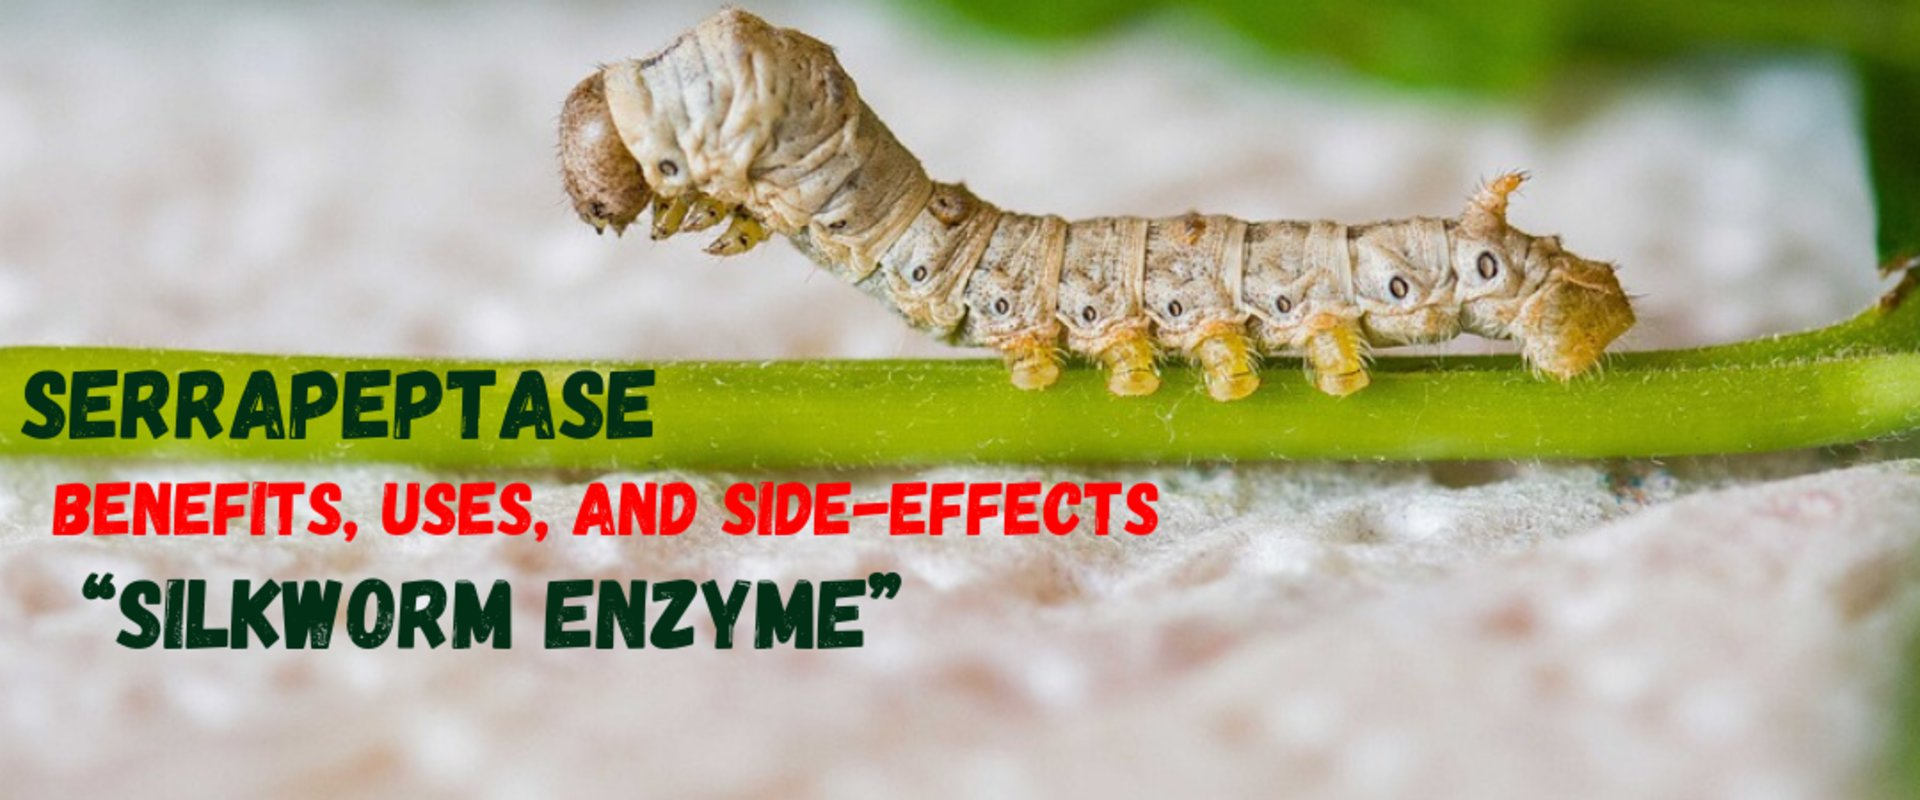 Serrapeptase Benefits Uses And Side Effects Of The Silkworm Enzyme Weight Loss Immune Boosting Health Blogs